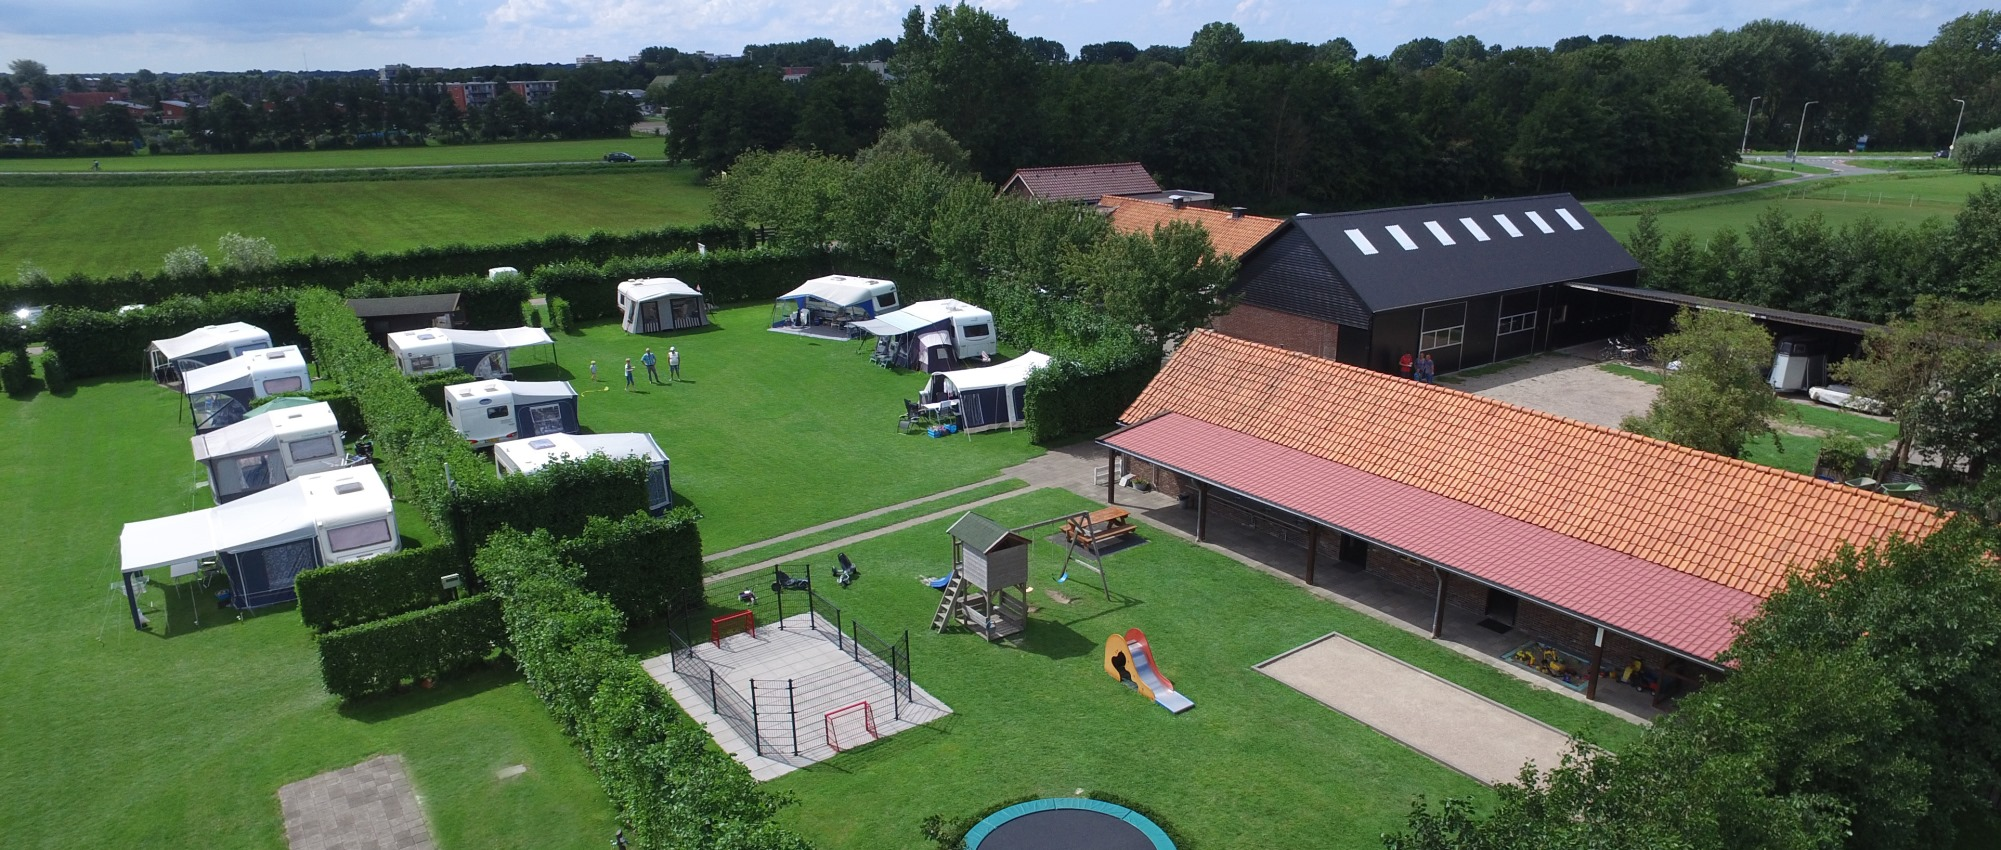 nette camping in Noord Holland